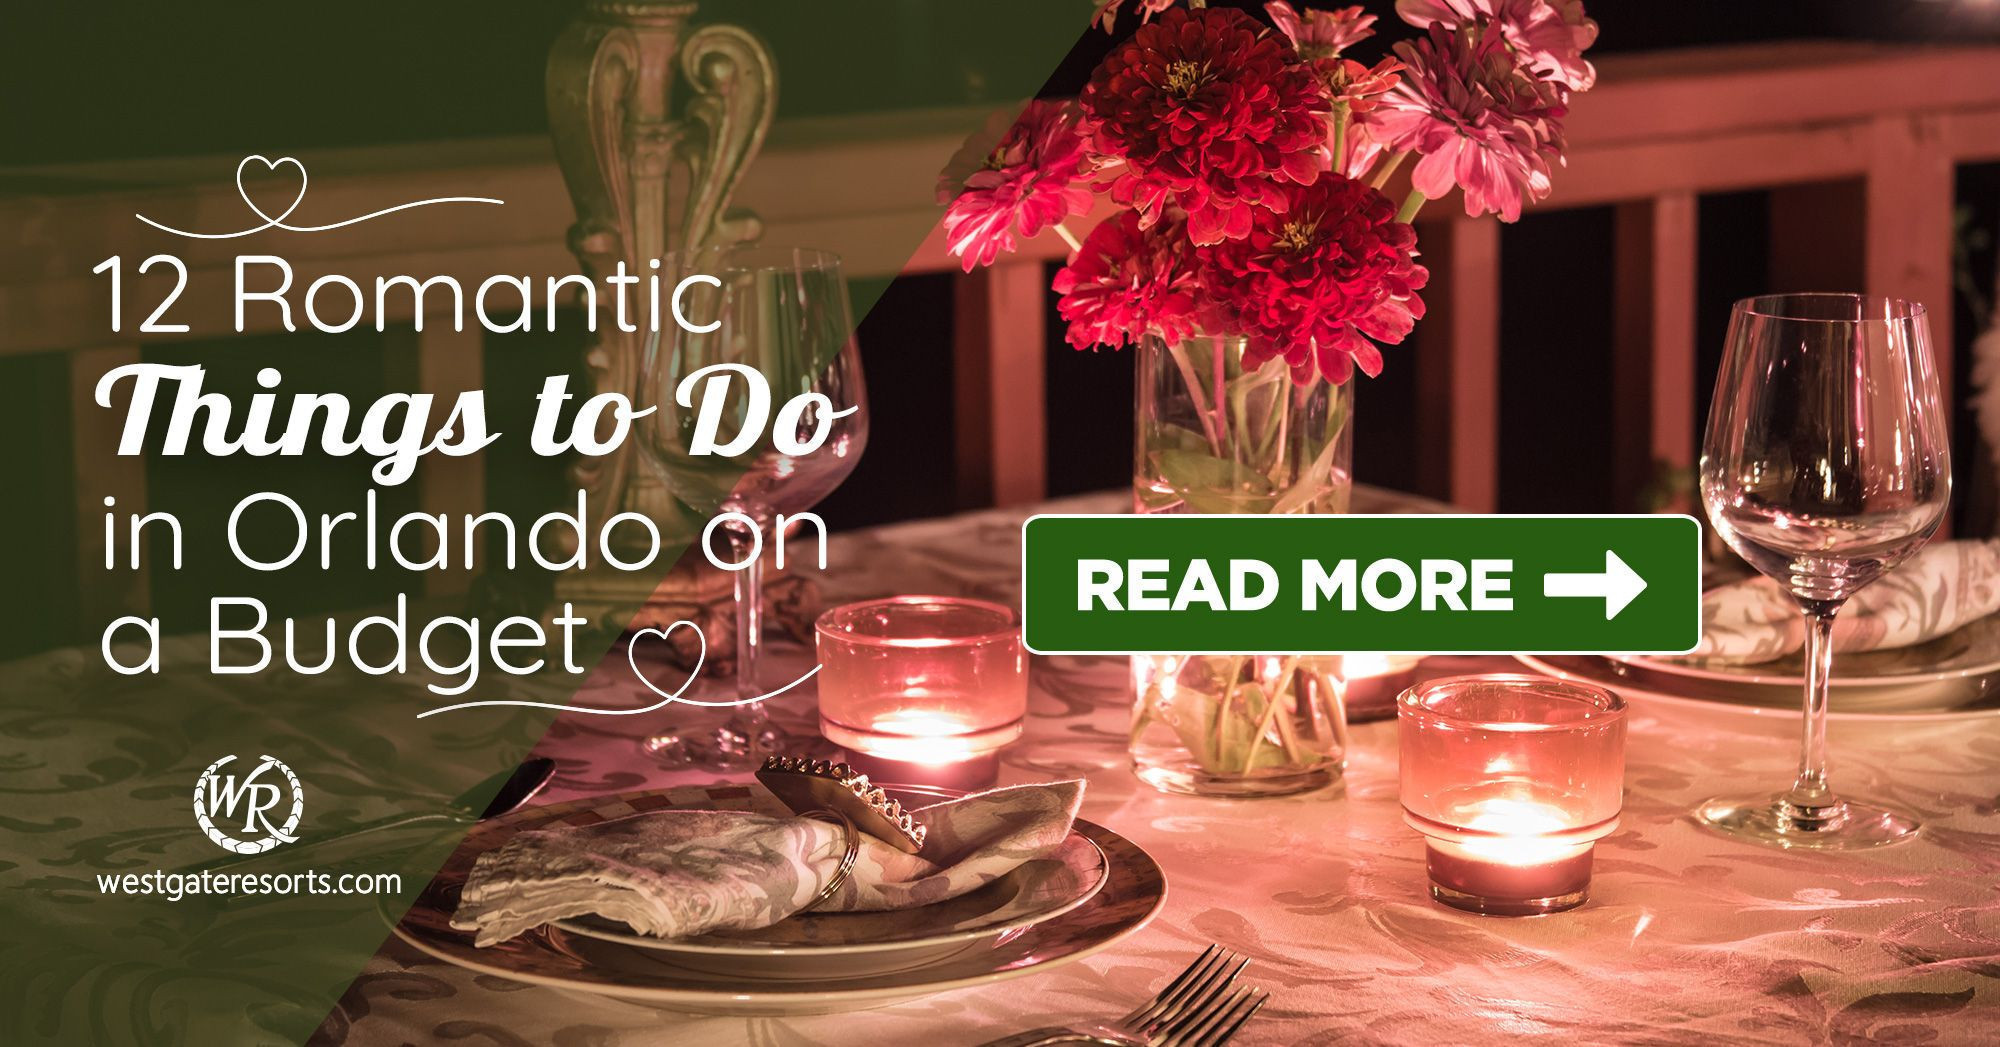 12 Romantic Things to Do in Orlando on a Budget